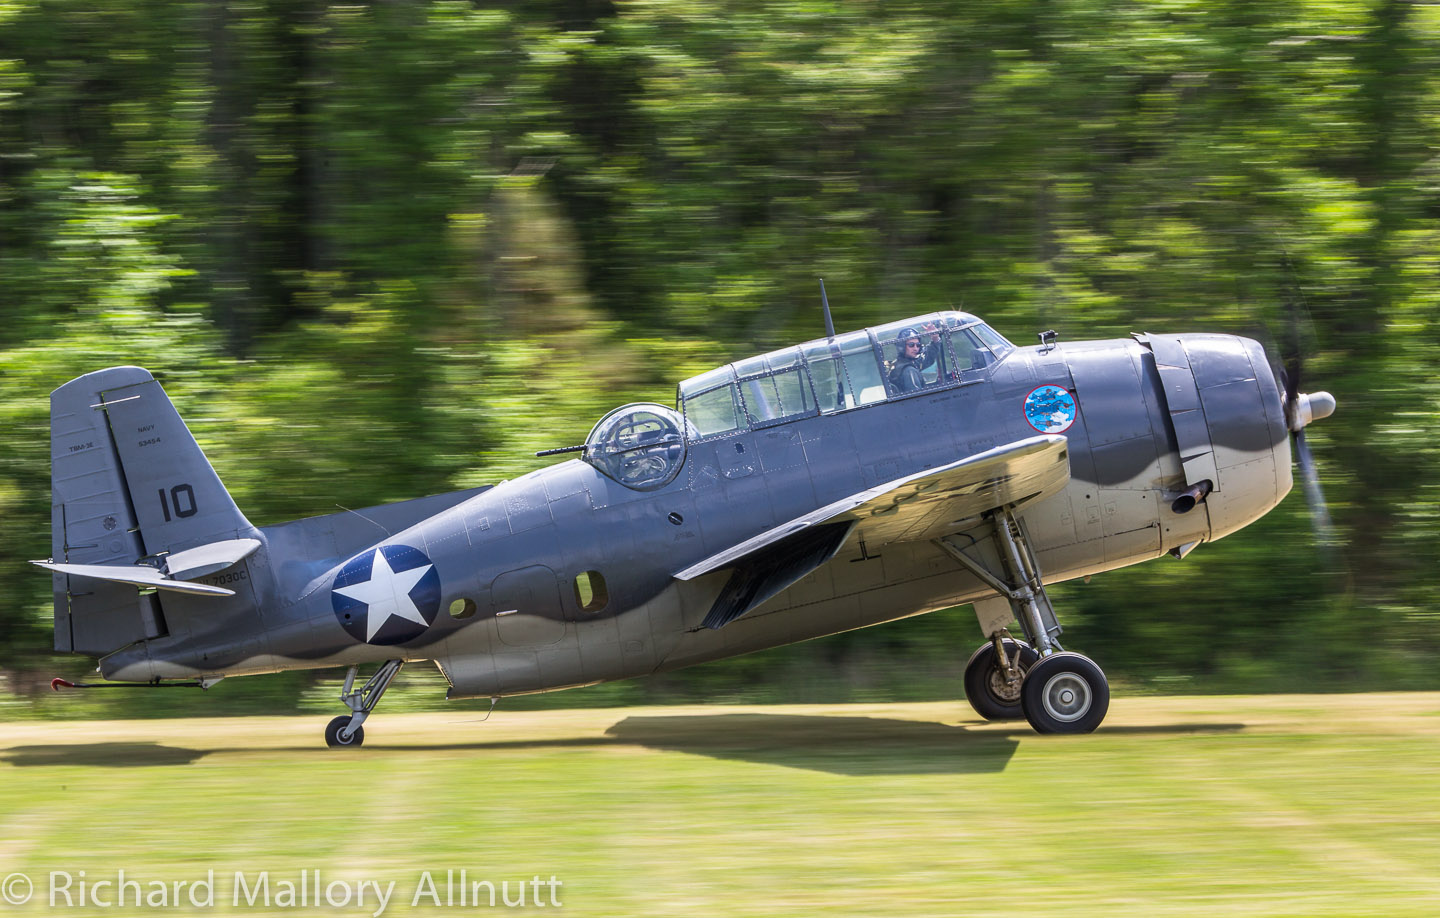 _C8A9831 - Richard Mallory Allnutt photo - Warbirds Over the Beach - Military Aviation Museum - Pungo, VA - May 17, 2014